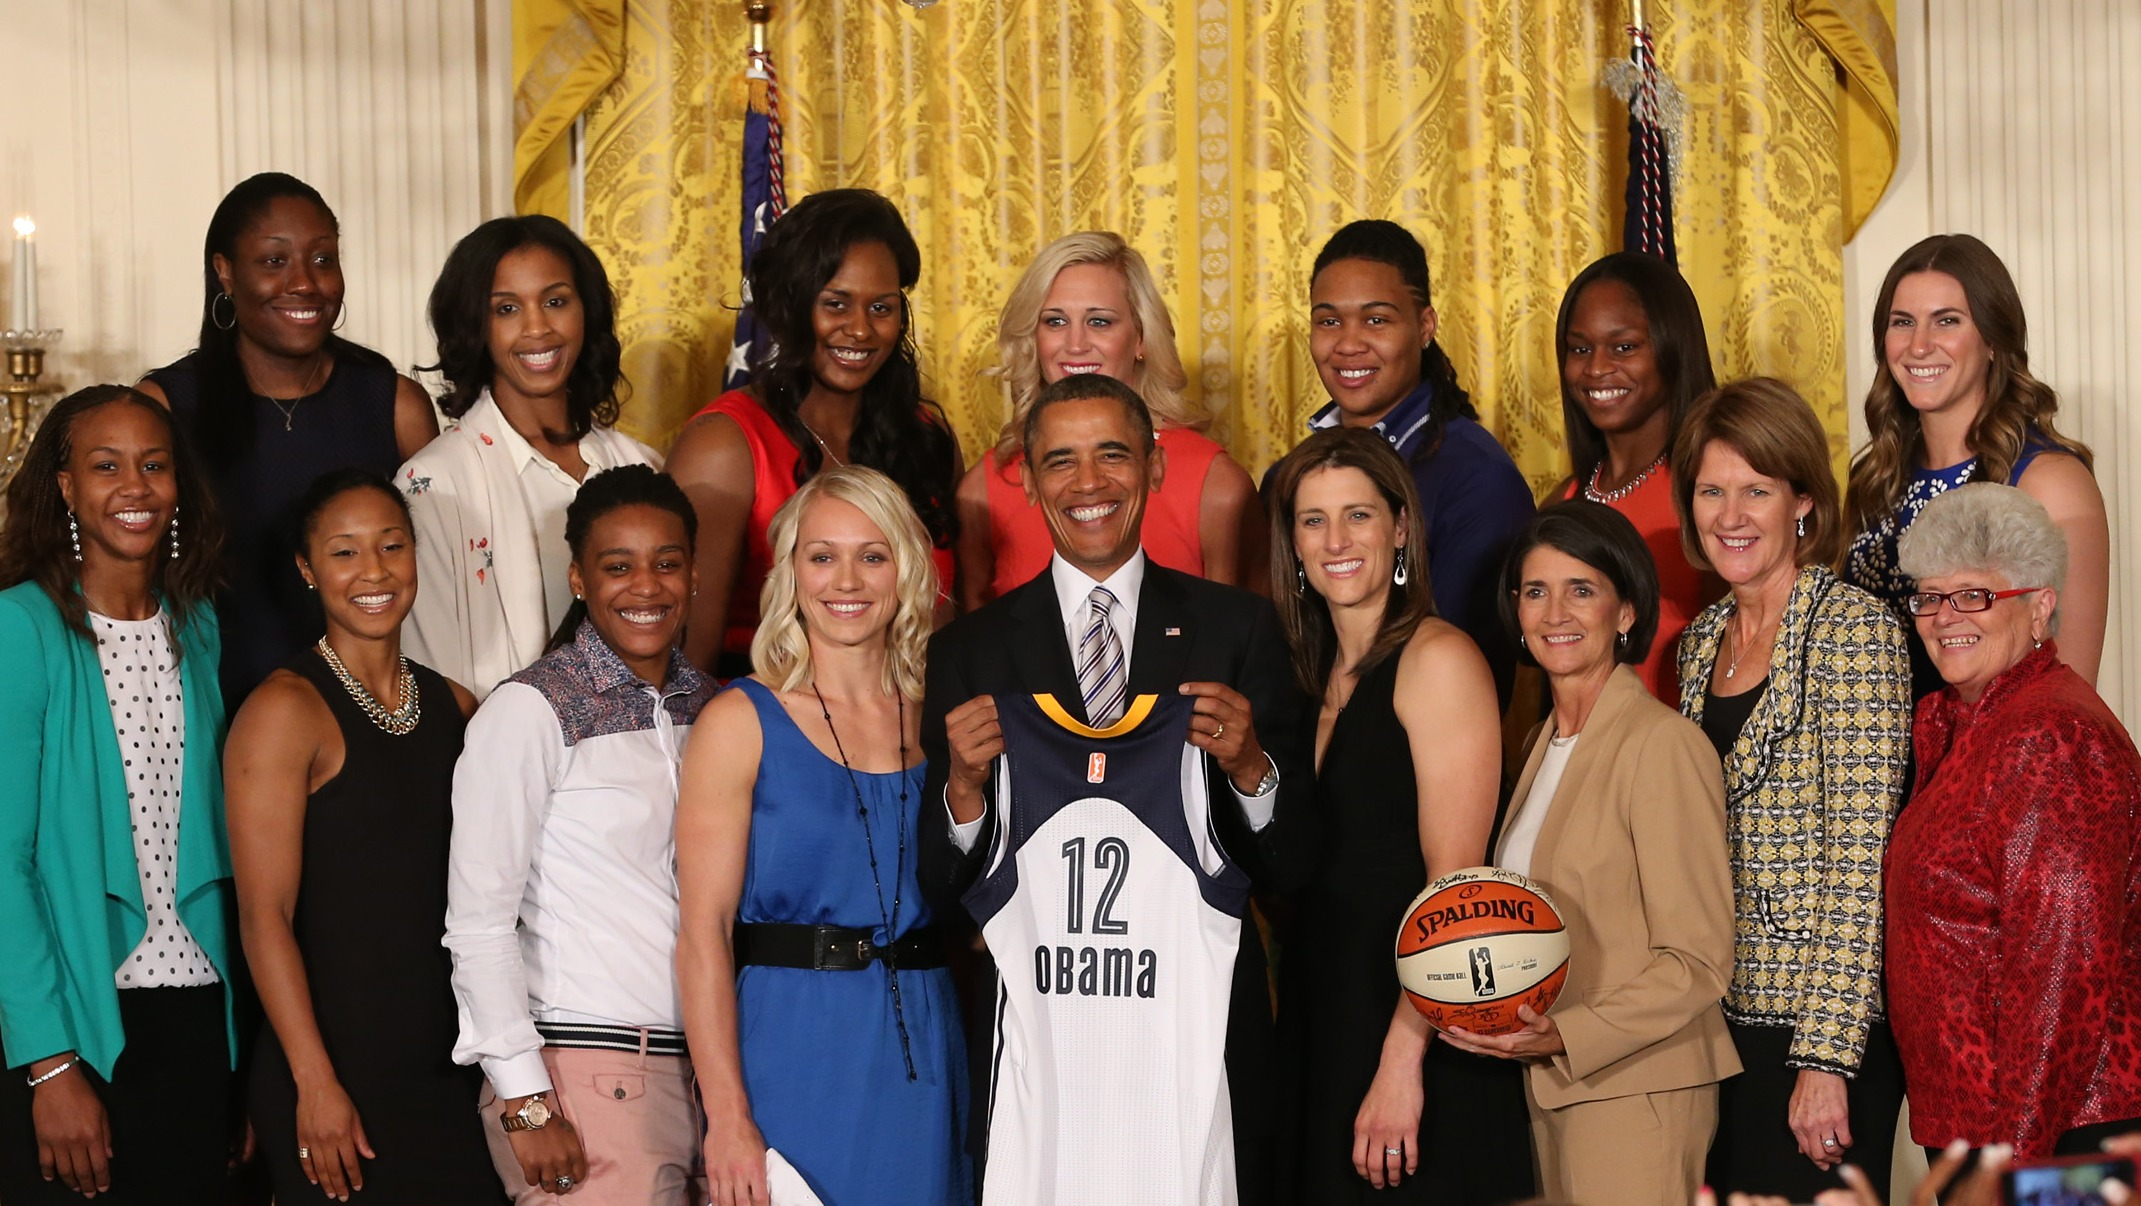 President Obama welcomes the Indiana Fever to the White House, team brings NCAA DIII champions DePauw